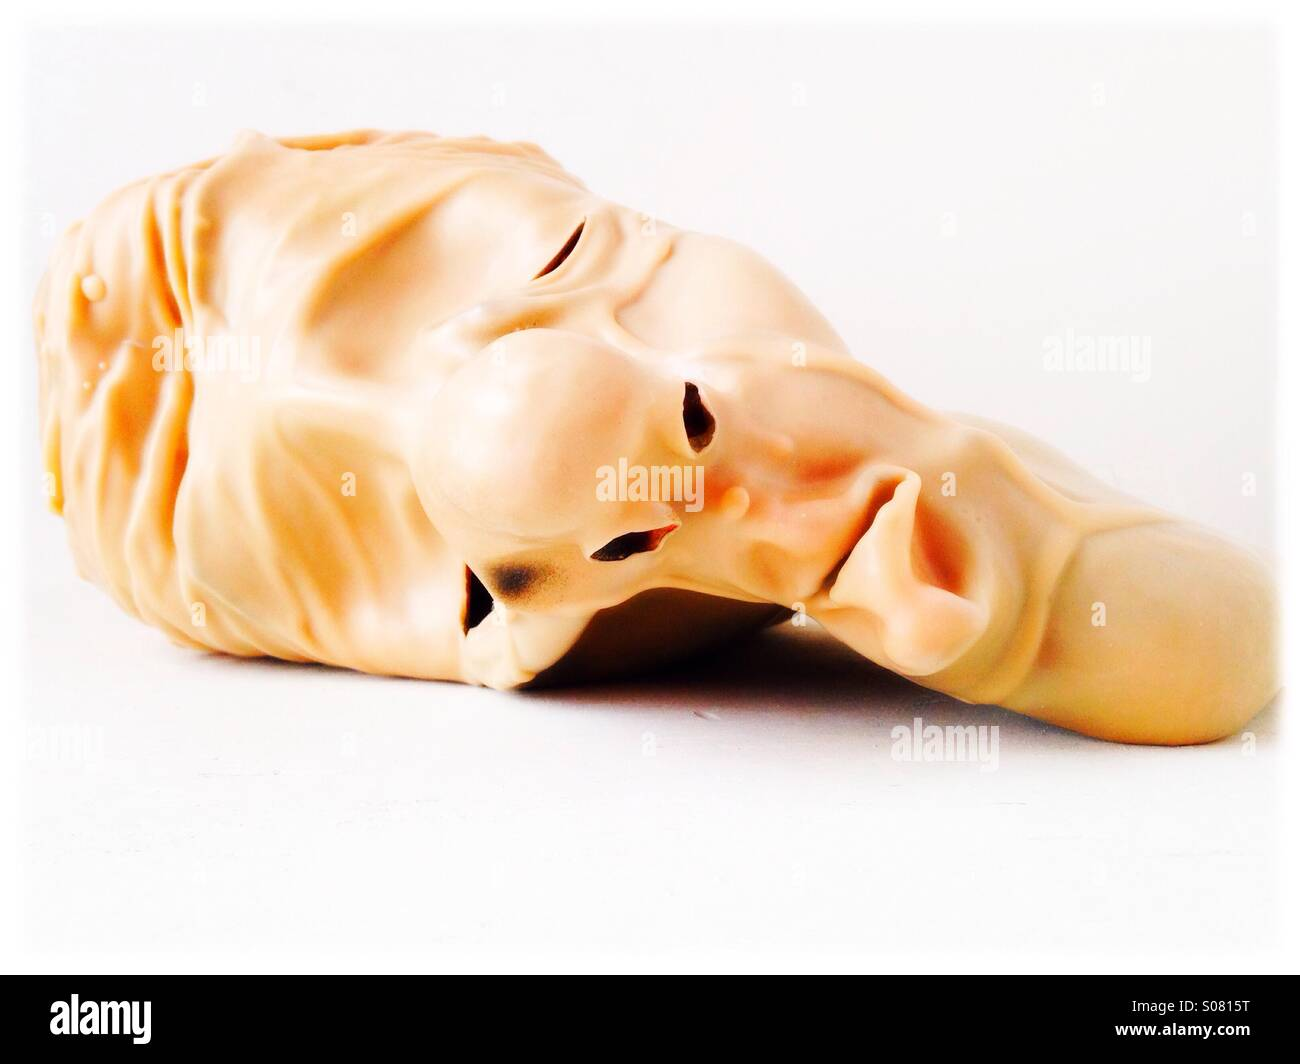 A deflated rubber mask of a man's face. - Stock Image